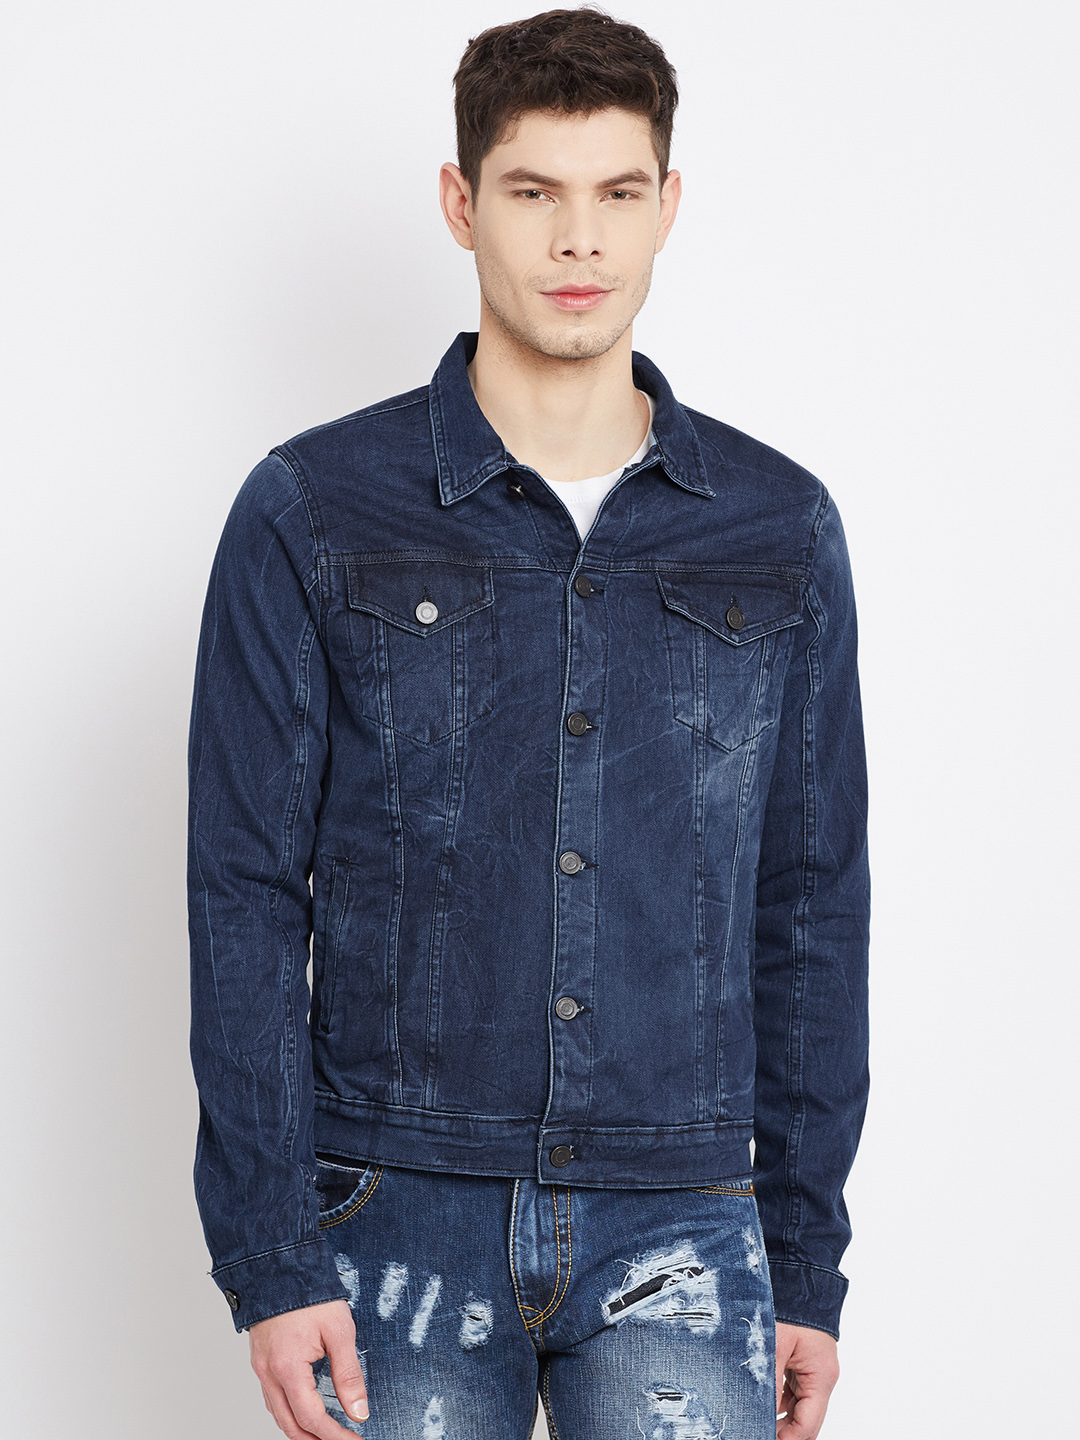 Jackets for Men - Buy Men&39s Jackets Online - Myntra